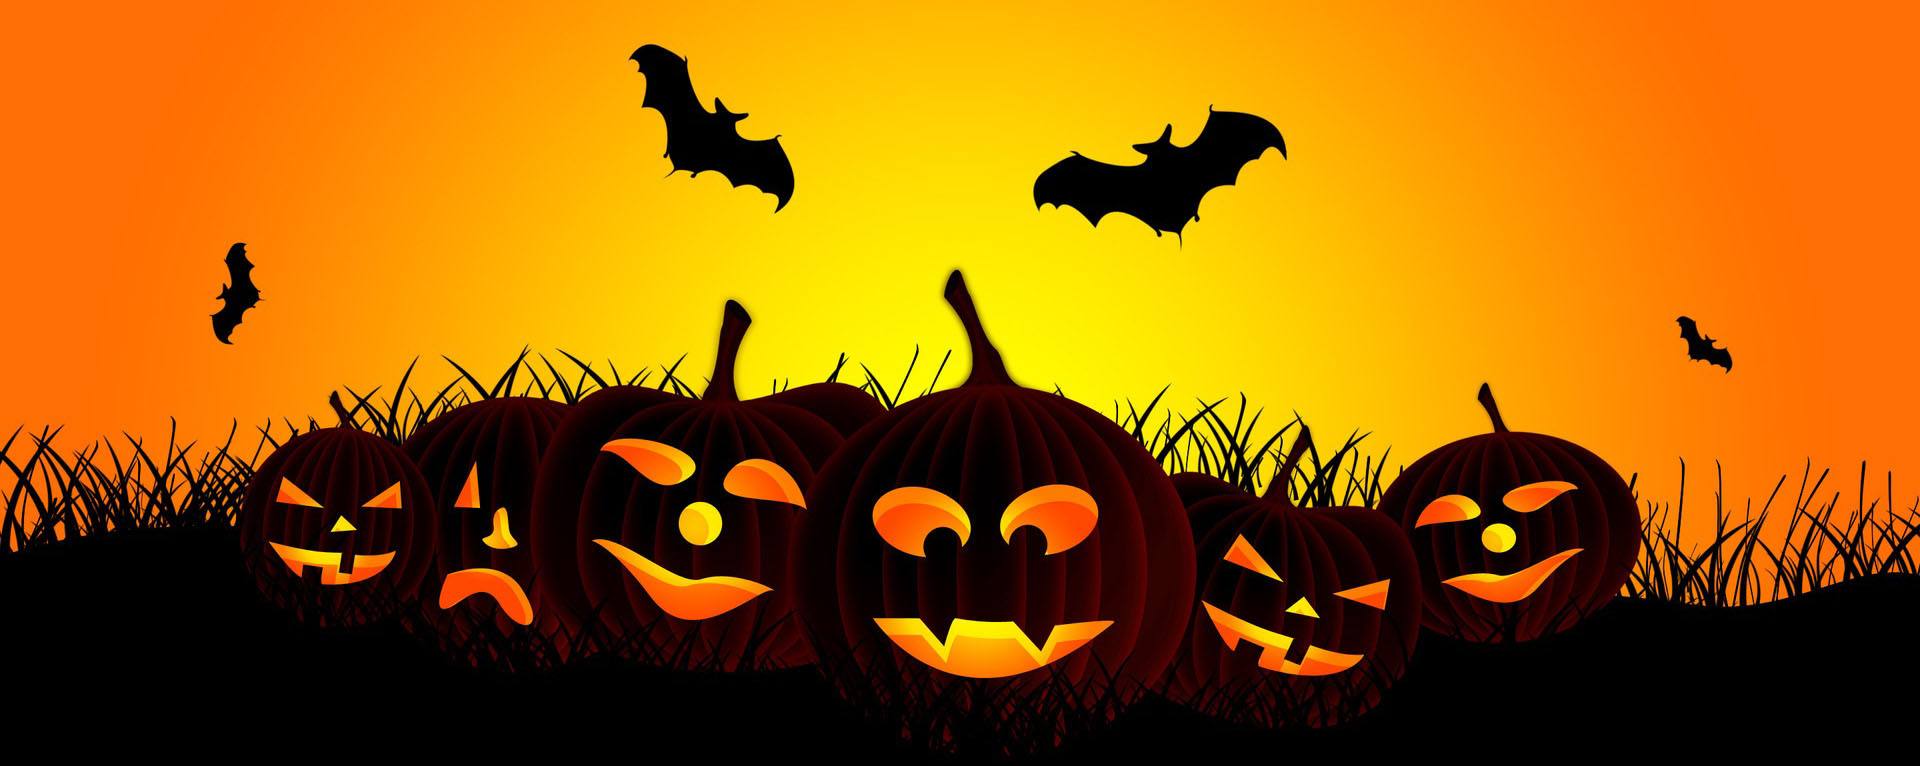 Happy Halloween Wallpapers On Wallpaper Hd 15   cole Montessori 1920x766